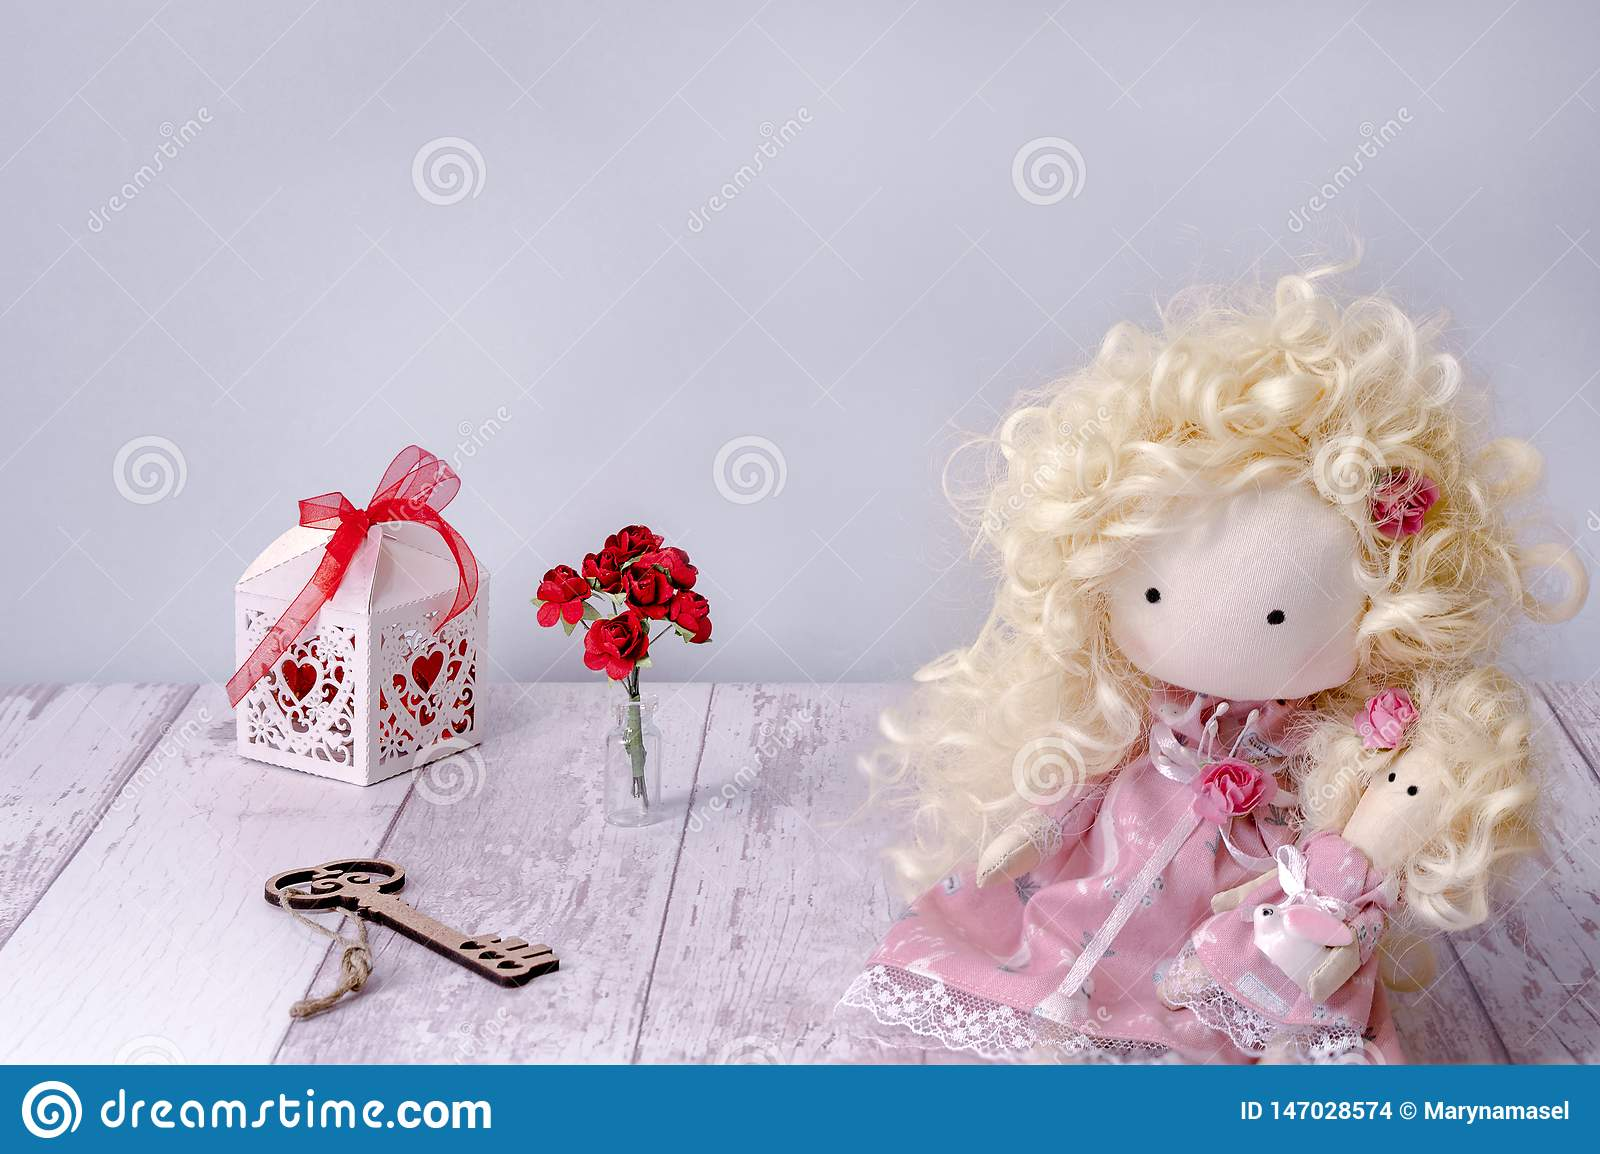 Handmade fabric doll girl on a white wooden table copyspace with fairy key, paper rose and gift box